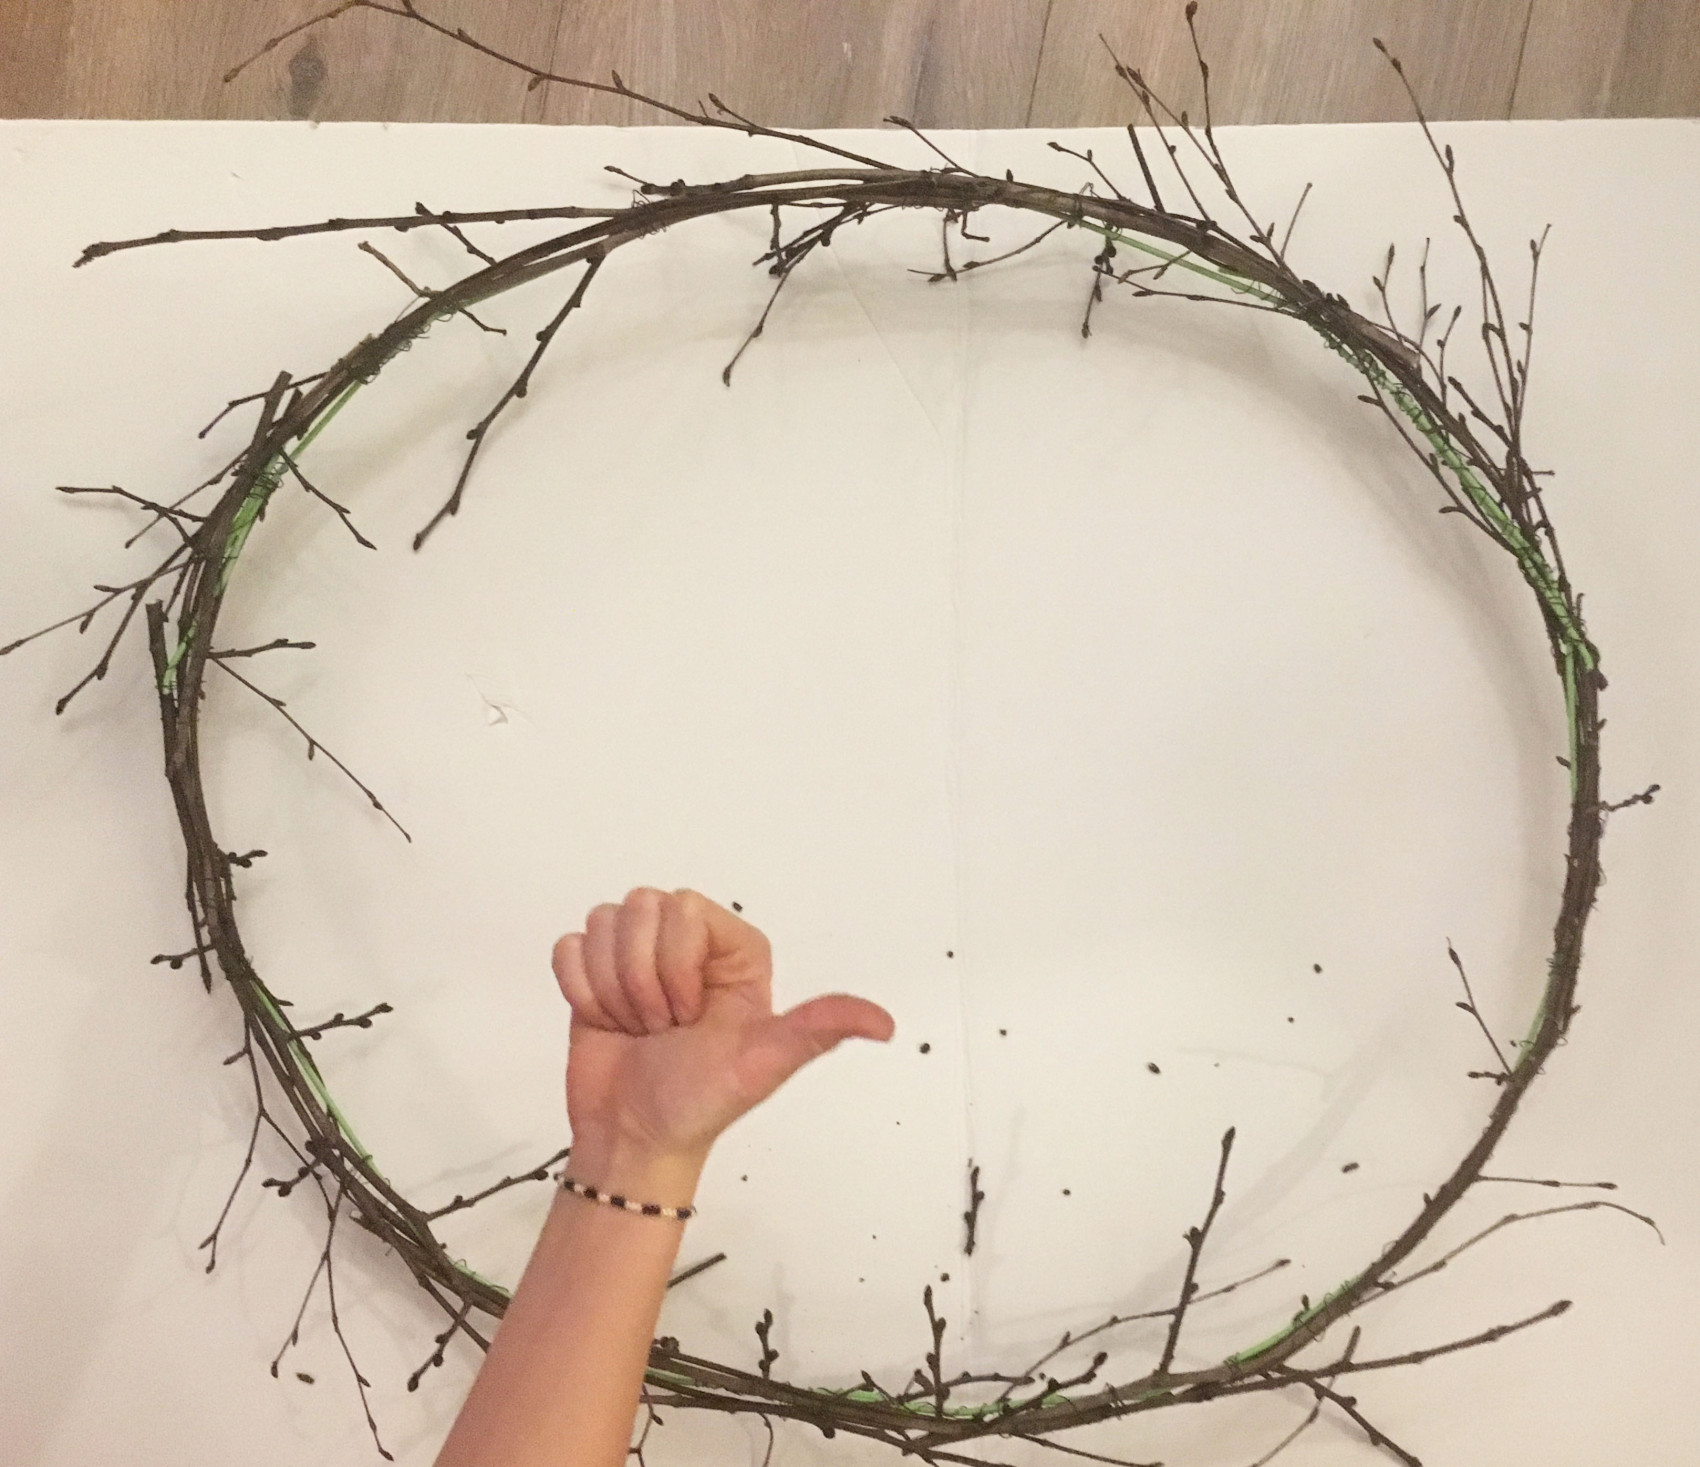 Julebling fra oven xmas wreath branches 5